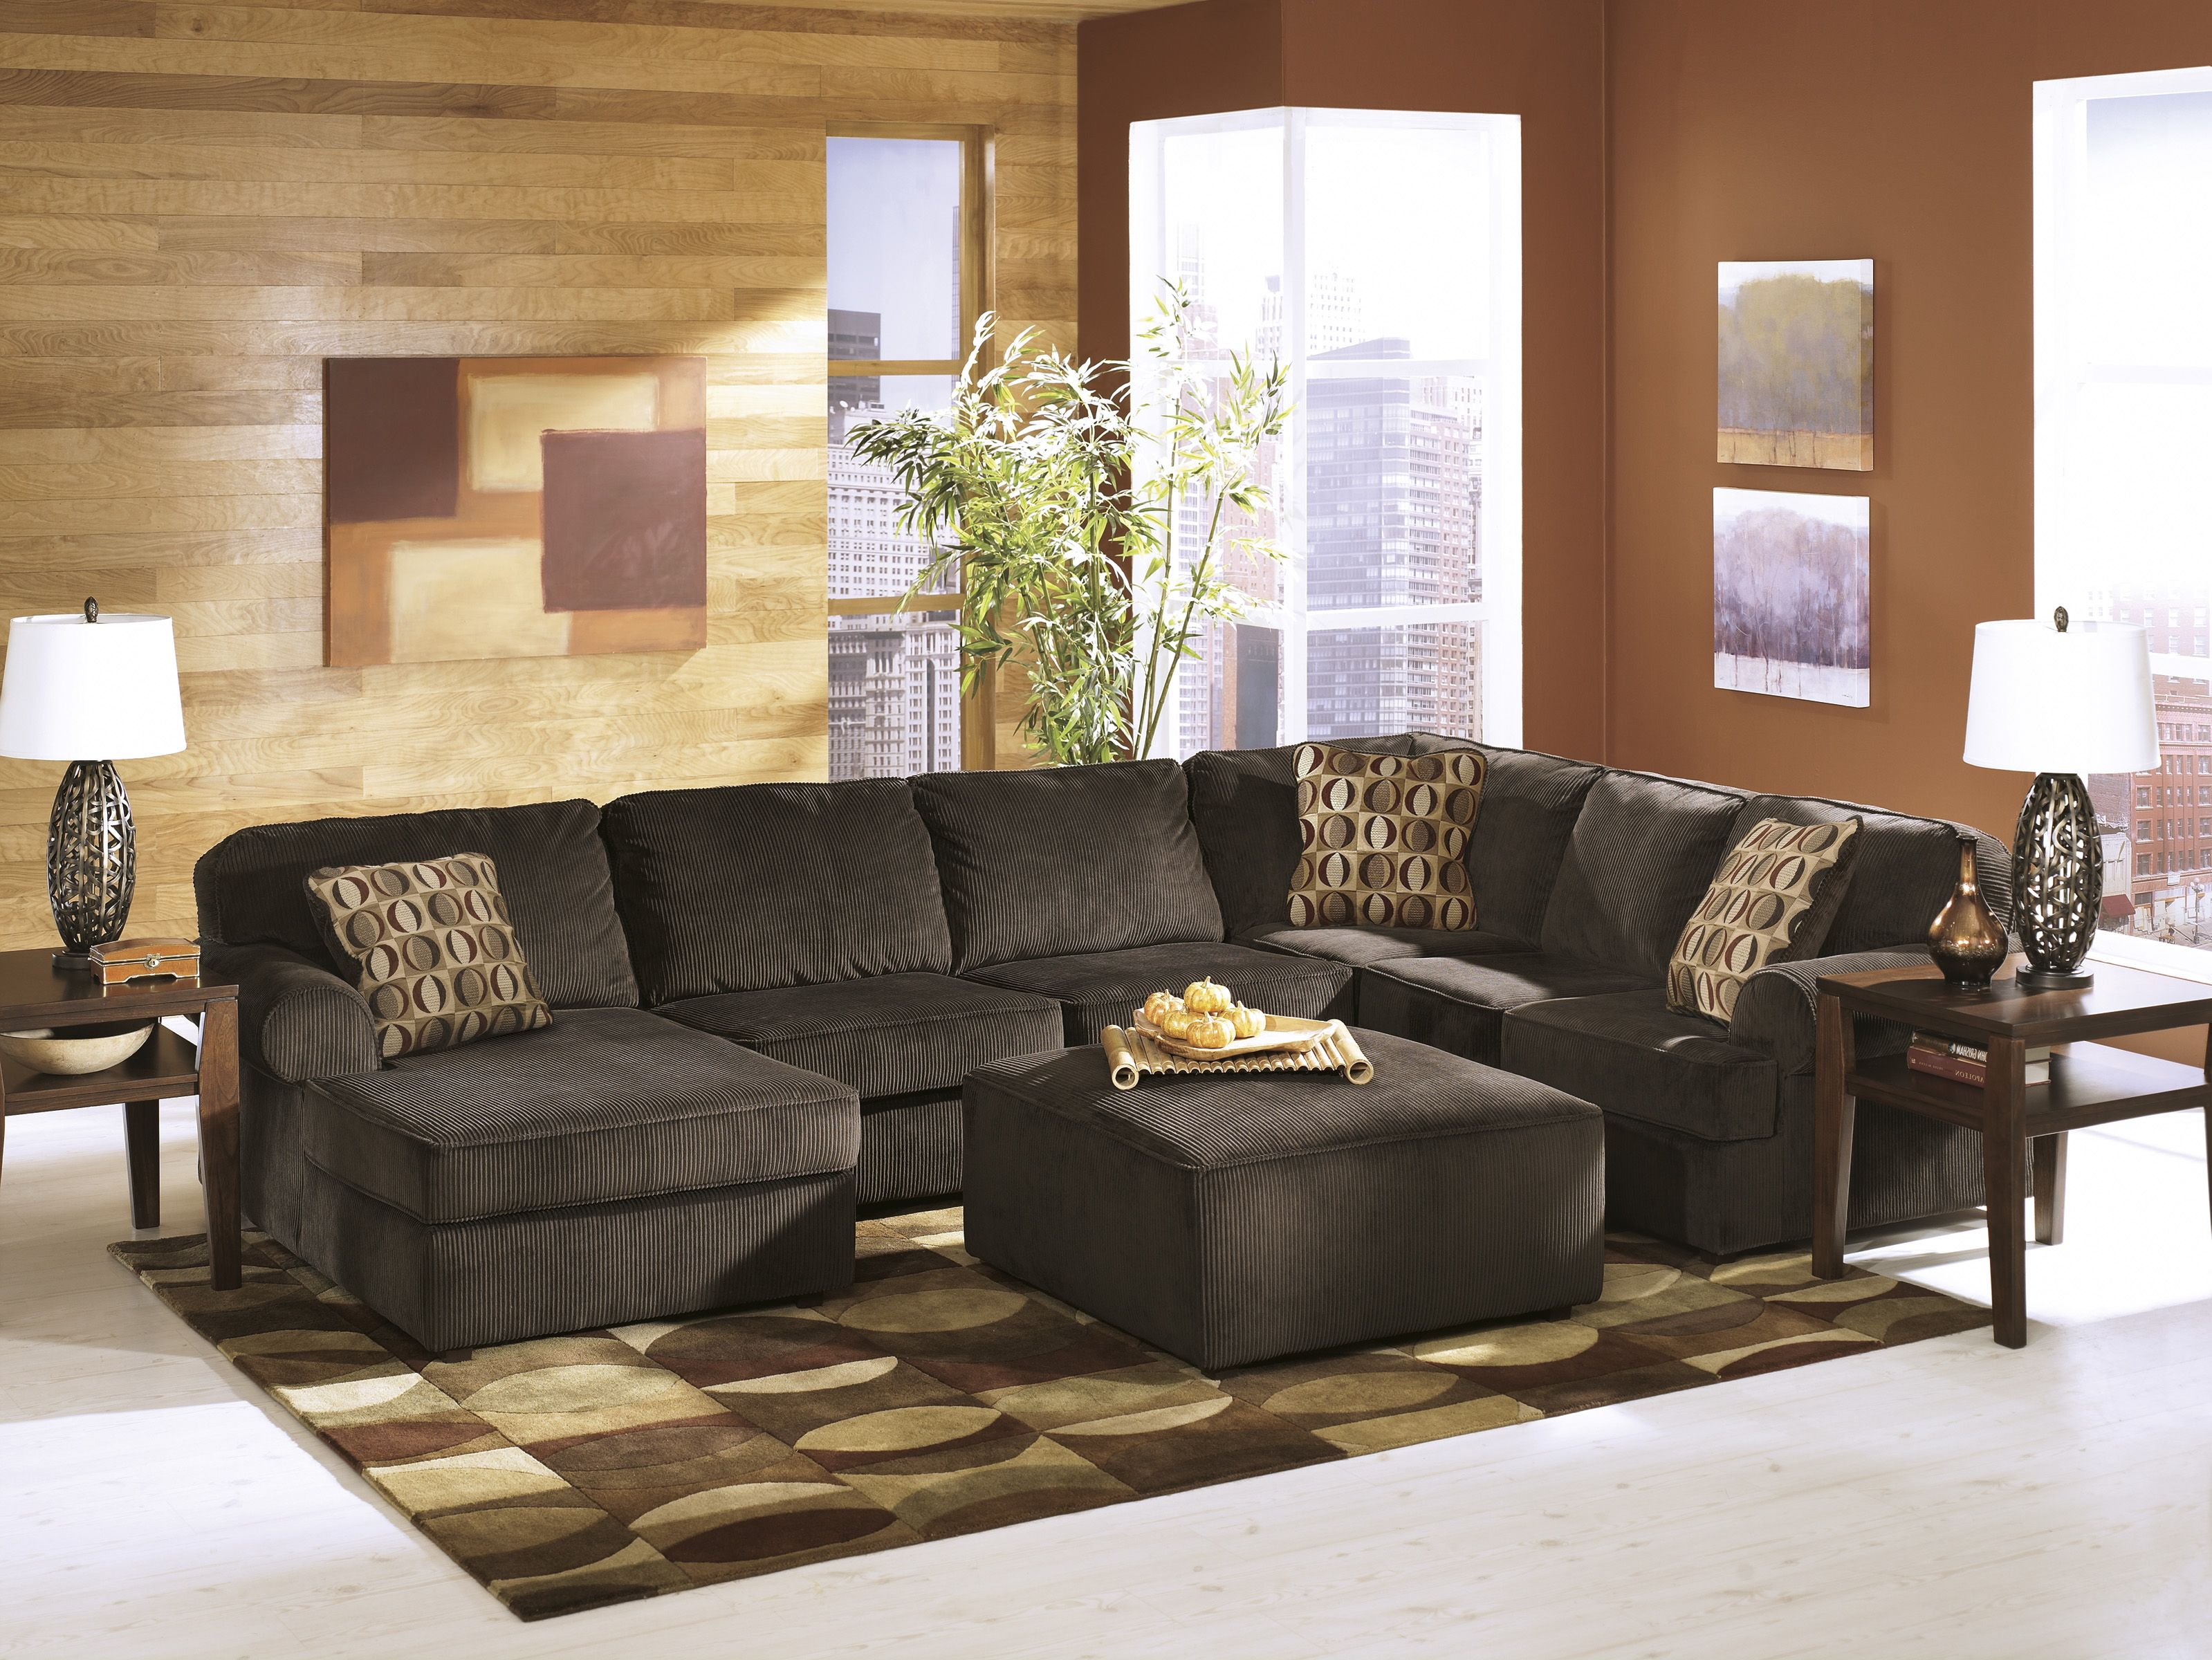 wonderful sofa wenatchee with spokane kennewick chaise contemporary cities s texnoklimat ashley right com walker piece tri loric x smoke sectional furniture